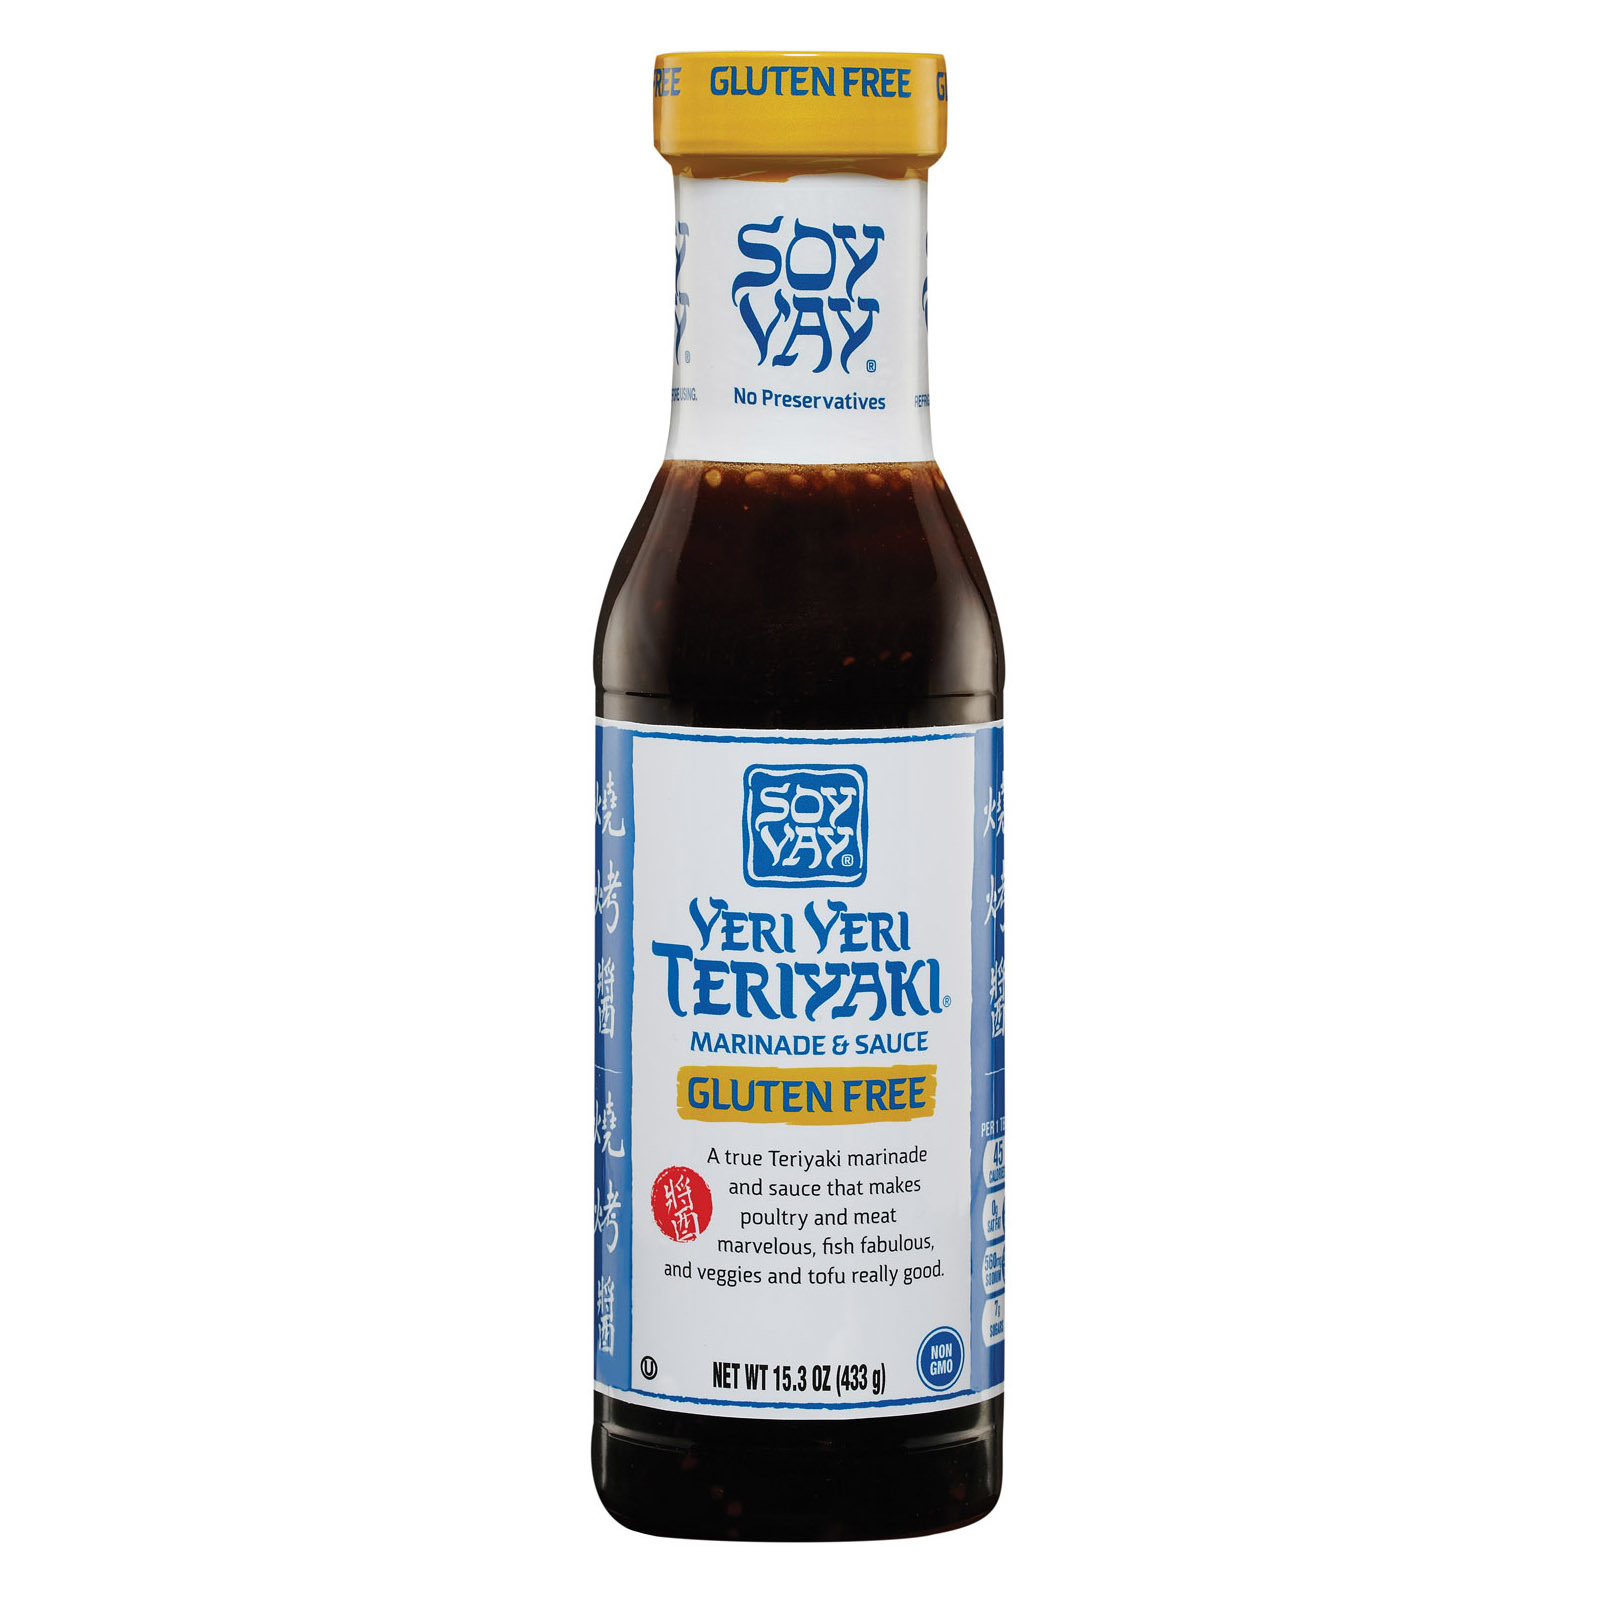 Soy Vay Dressing and Sauce - Veri Veri Teriyaki - Case of 6 - 15.3 oz.